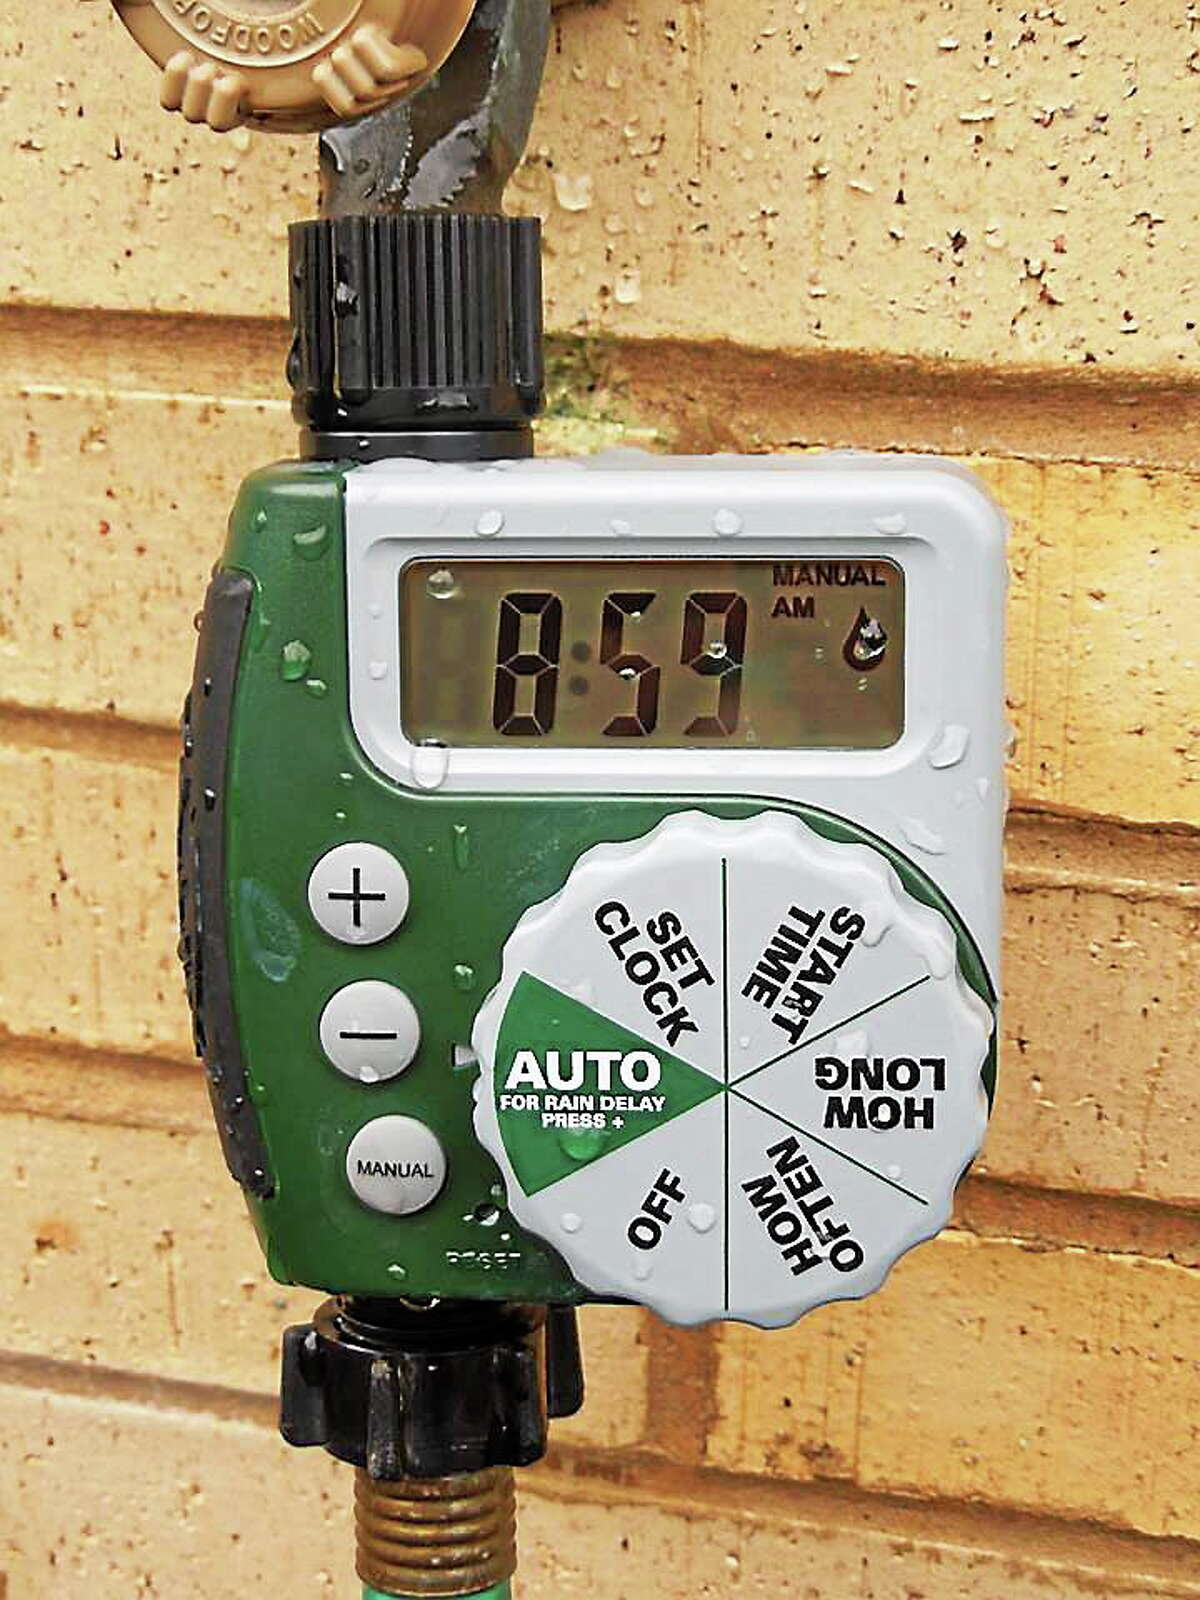 Courtesy photo Sowing Seeds at Moody School in Middletown now has the latest technology introduced to the courtyards: A water timer.